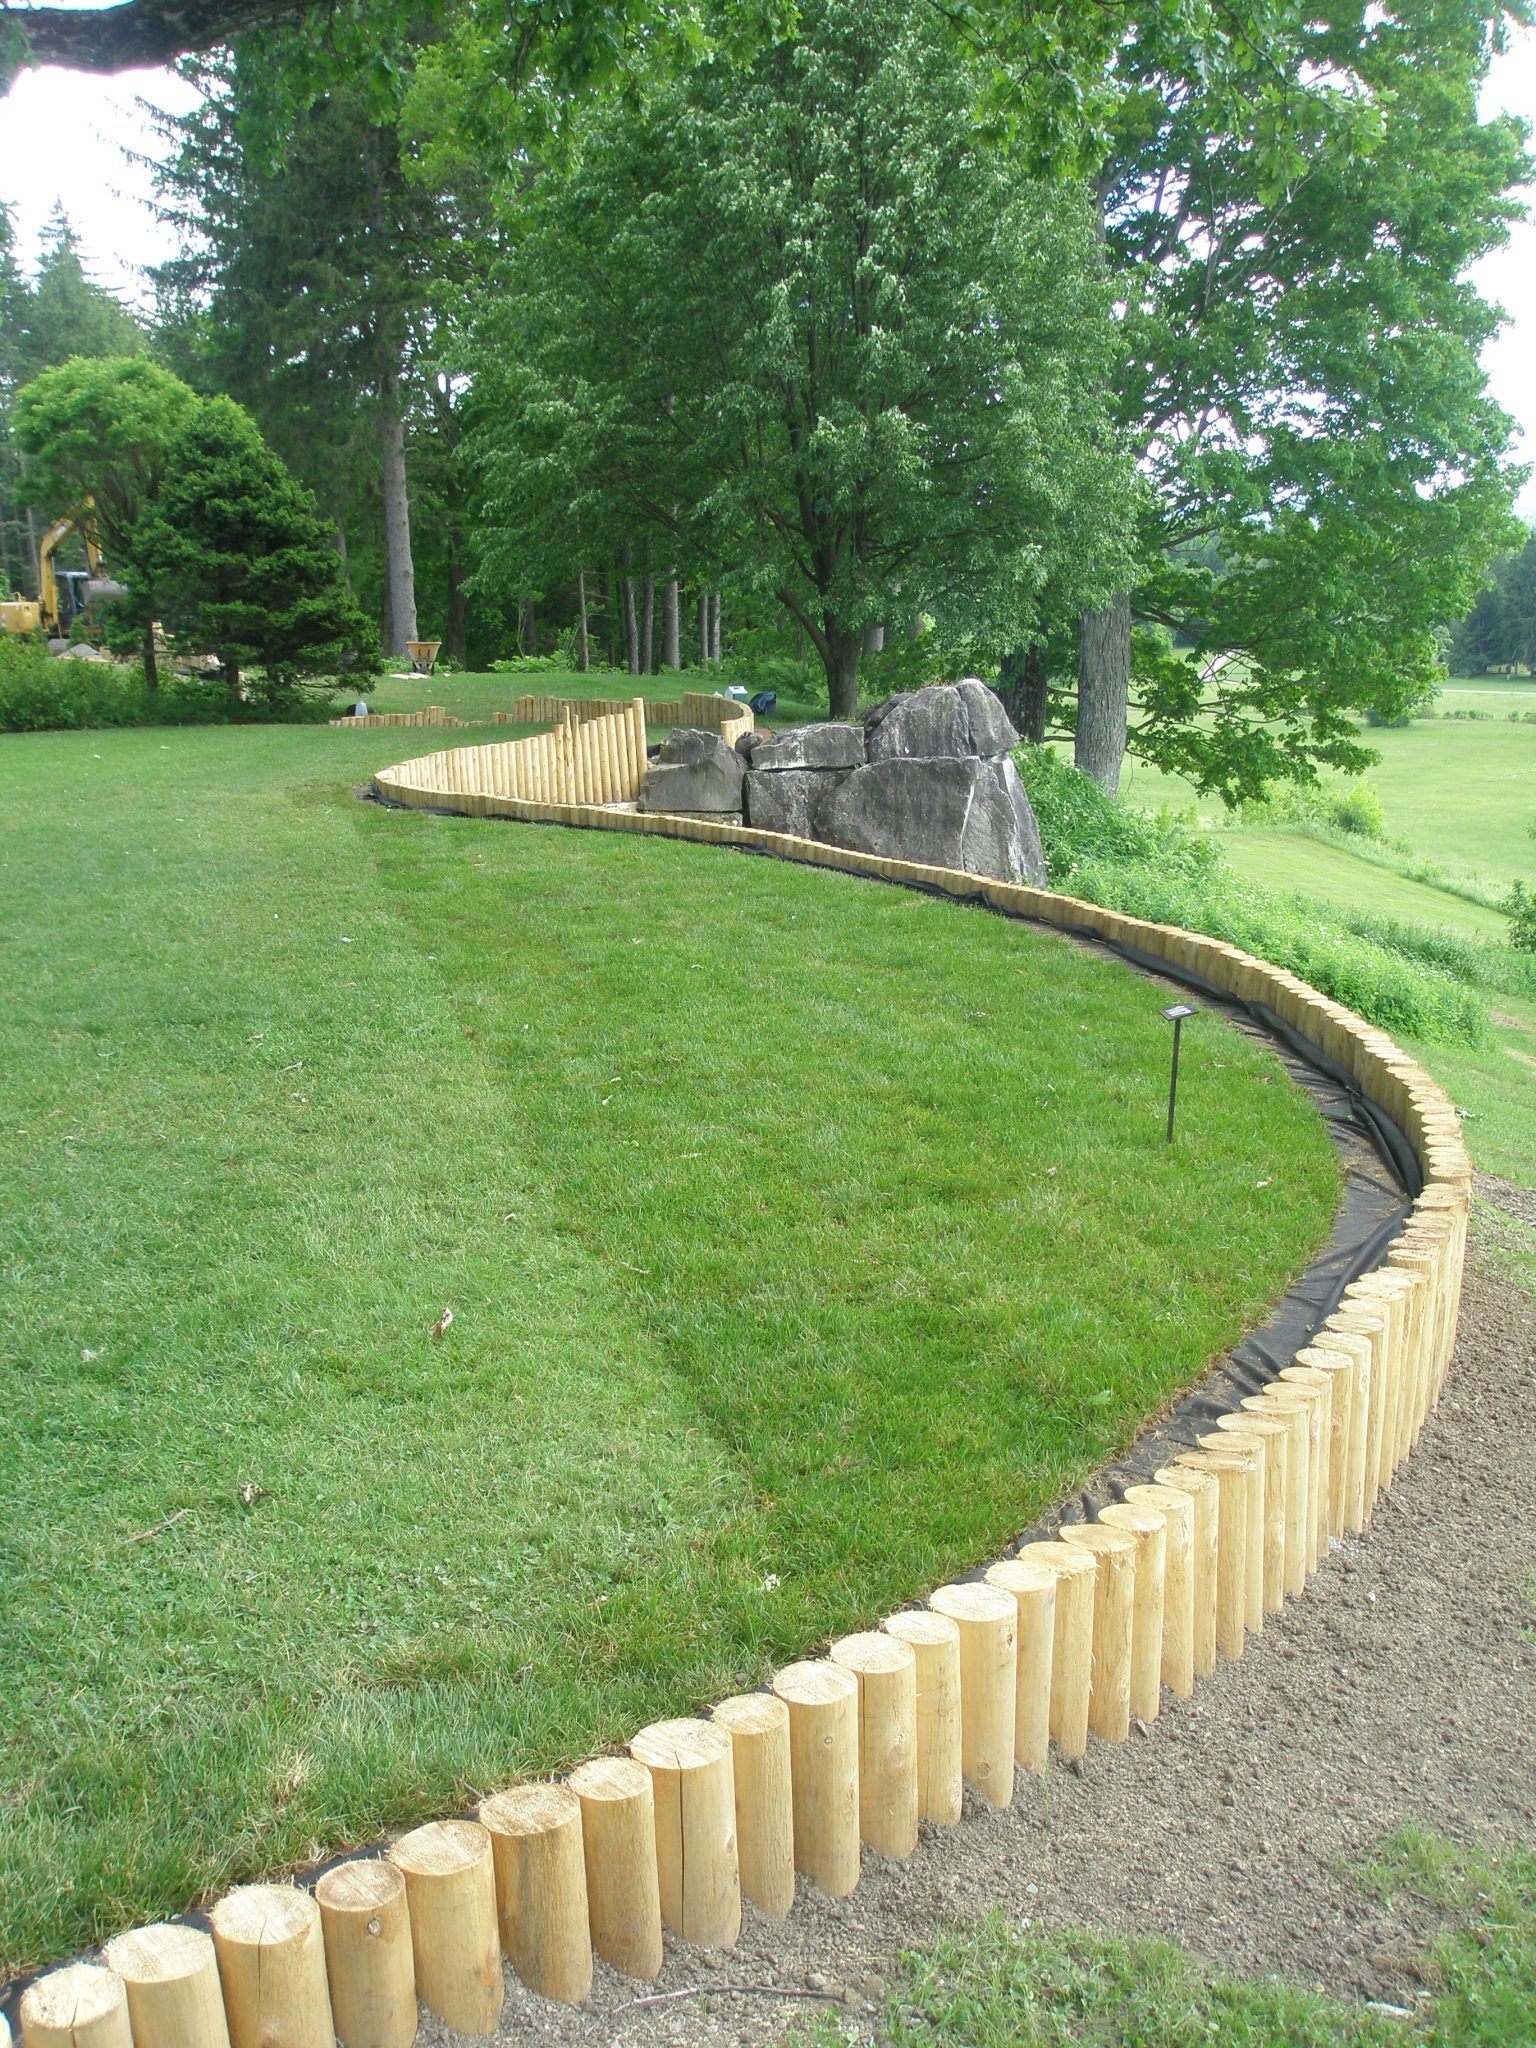 New cedar posts have been installed as the retaining wall at the Western edge of the Oak Lawn